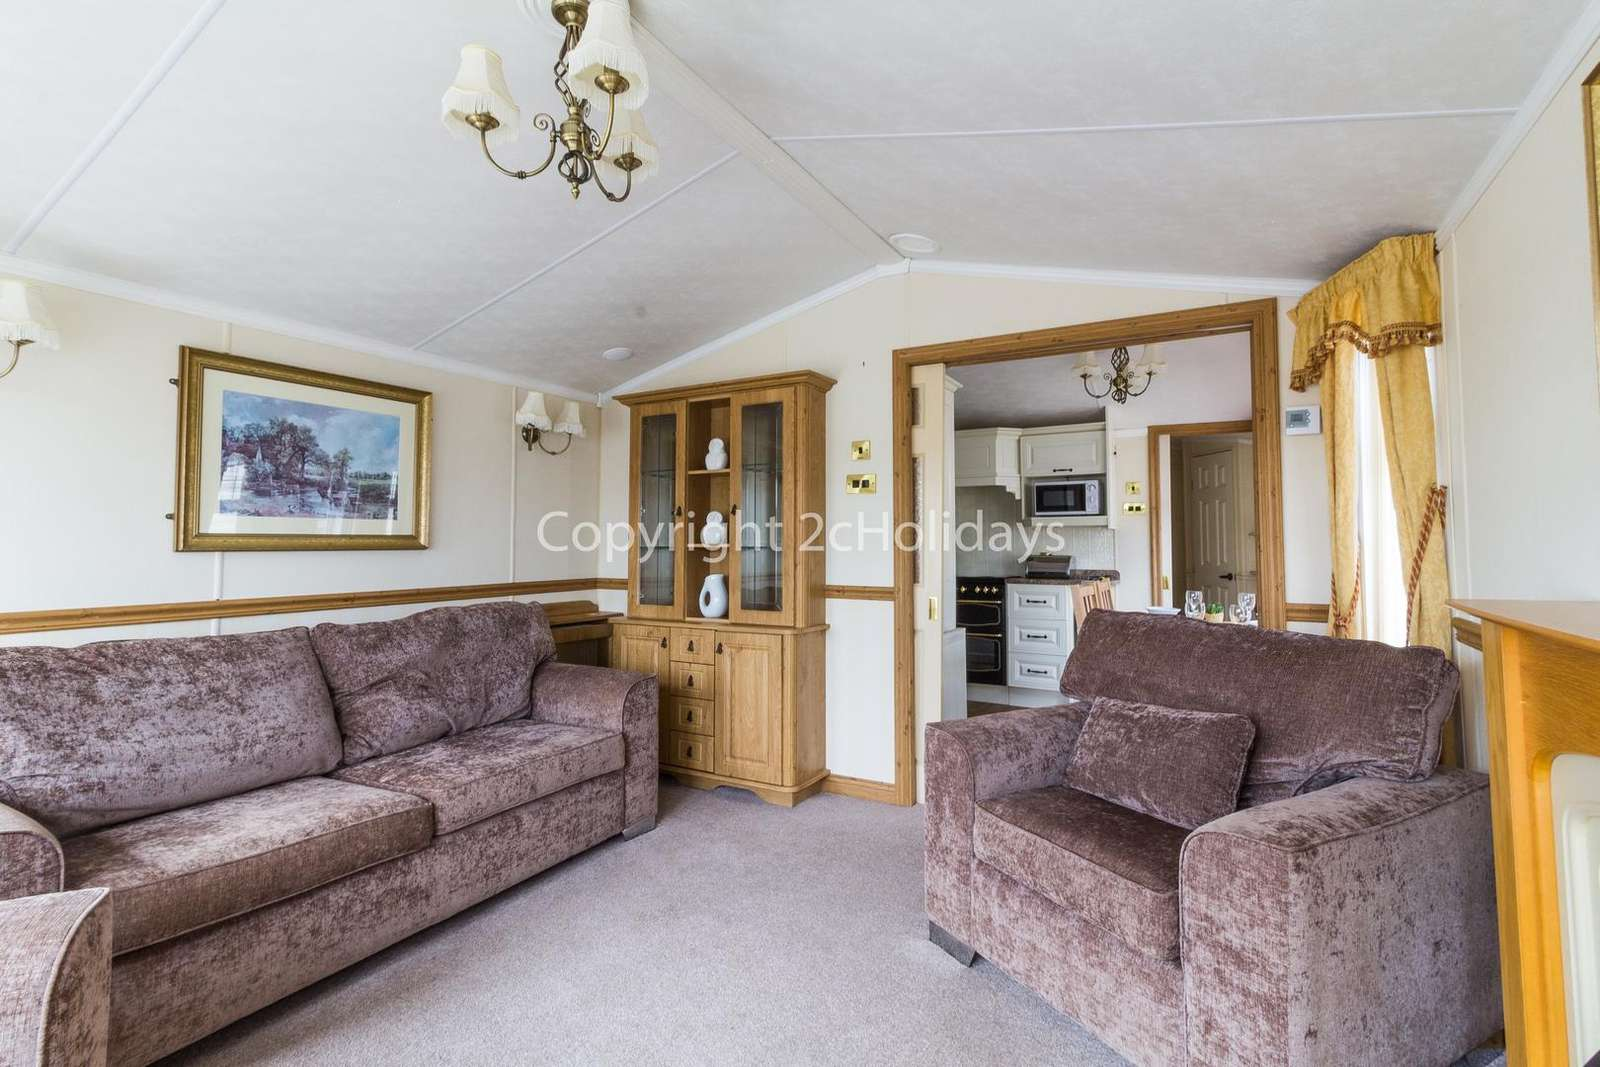 You can find a double sofa bed in this lounge